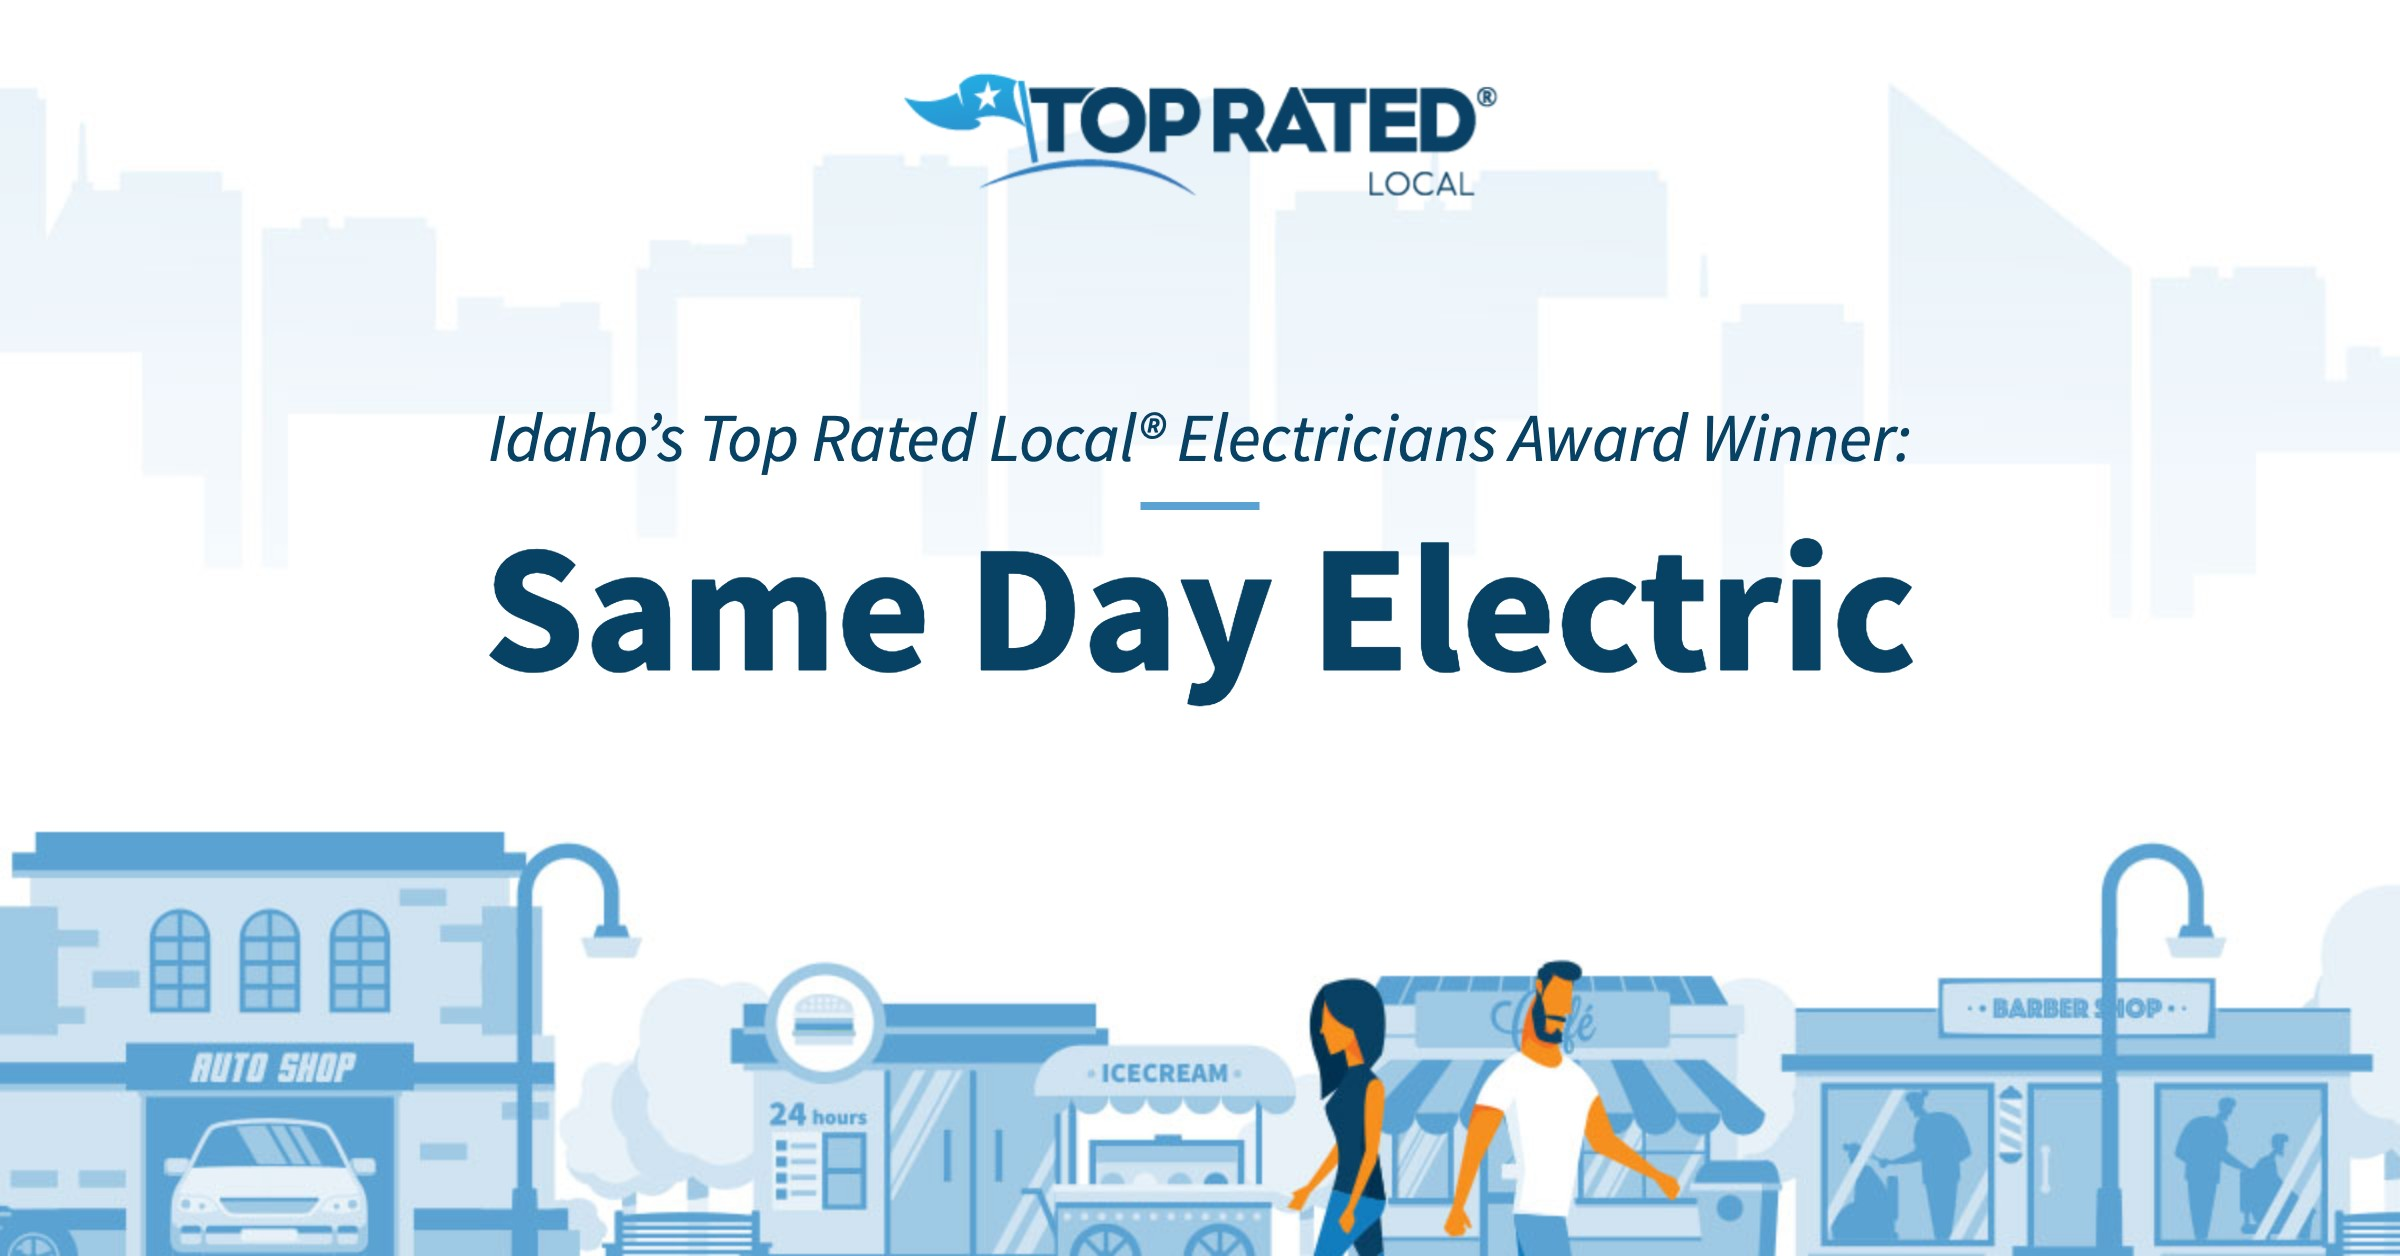 Idaho's Top Rated Local® Electricians Award Winner: Same Day Electric